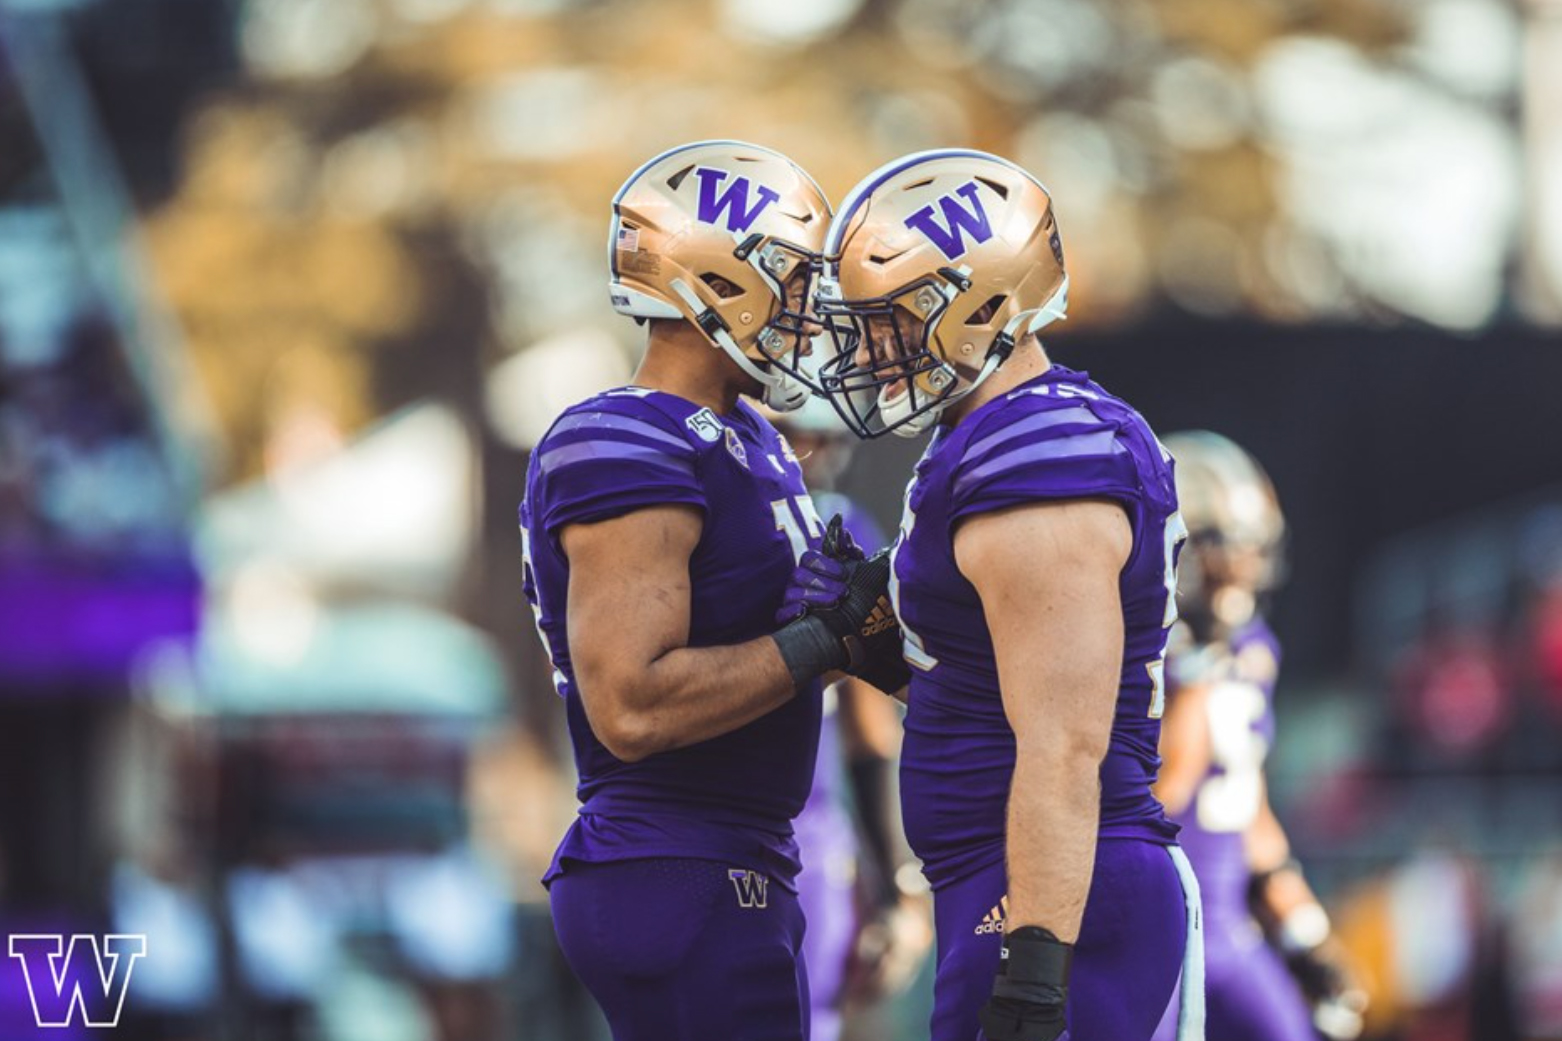 two University of Washington football players clasping hands